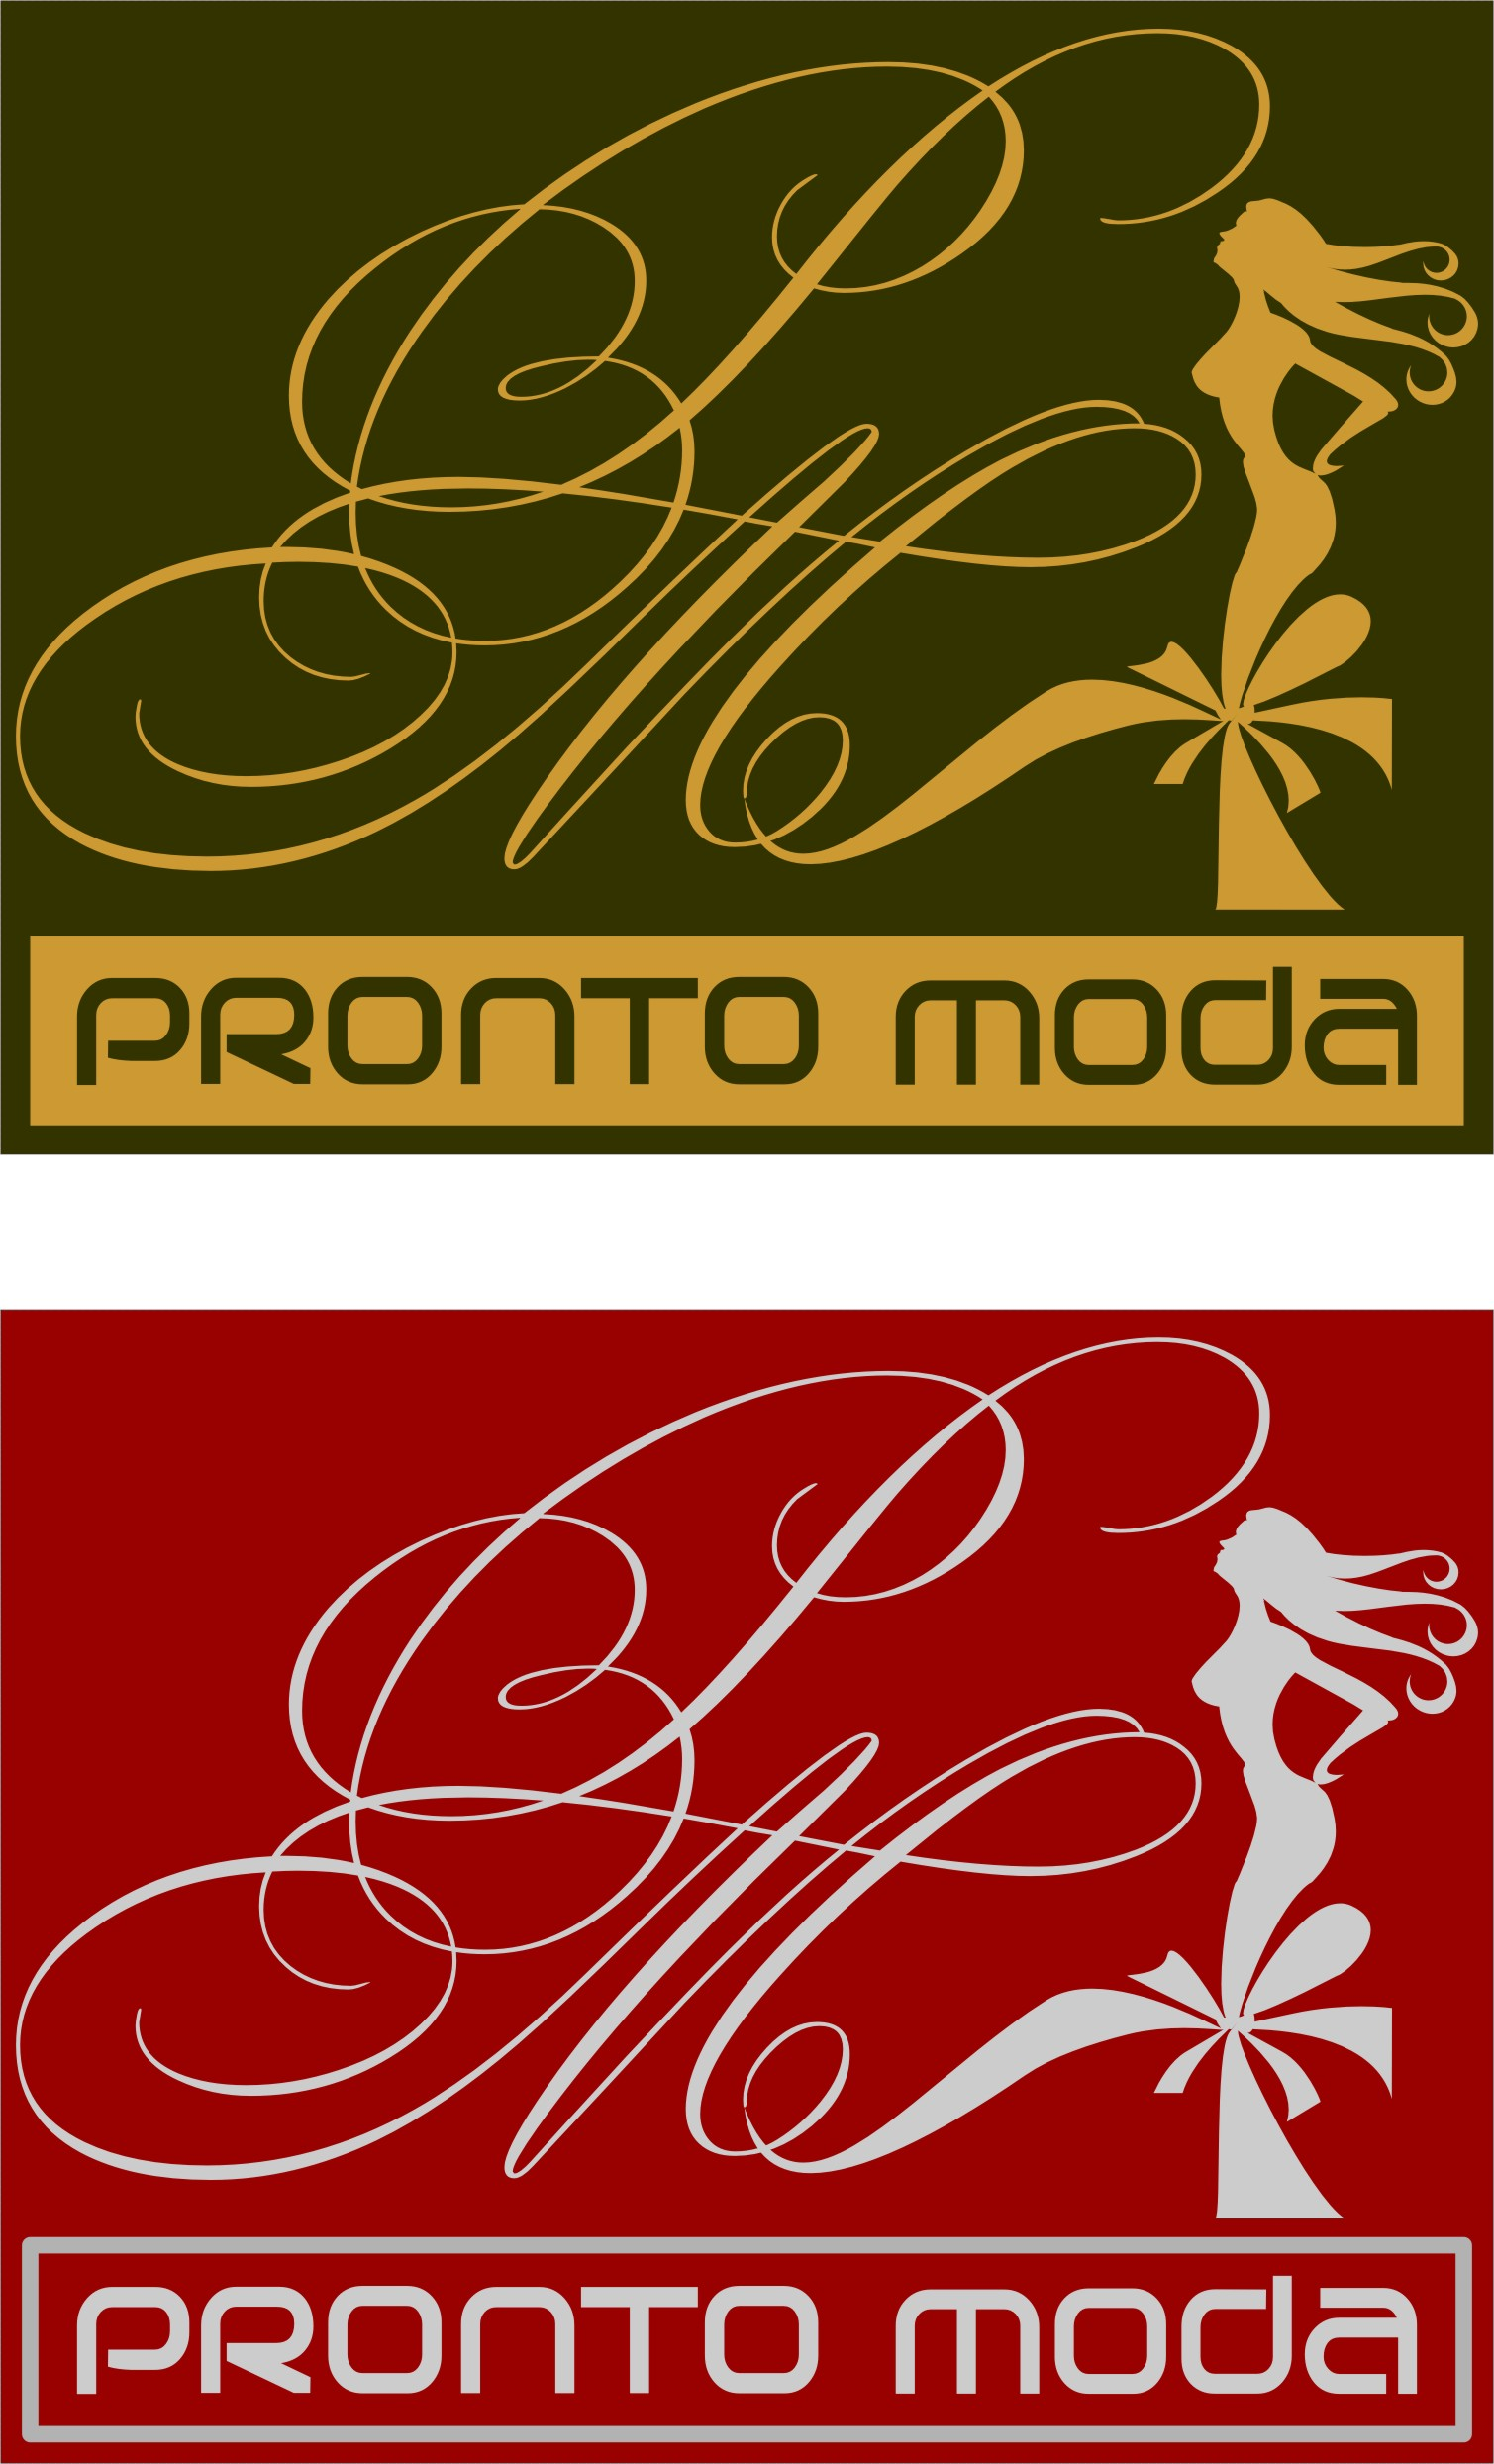 Logo Design by Korsunov Oleg - Entry No. 62 in the Logo Design Contest Captivating Logo Design for Pronto moda.